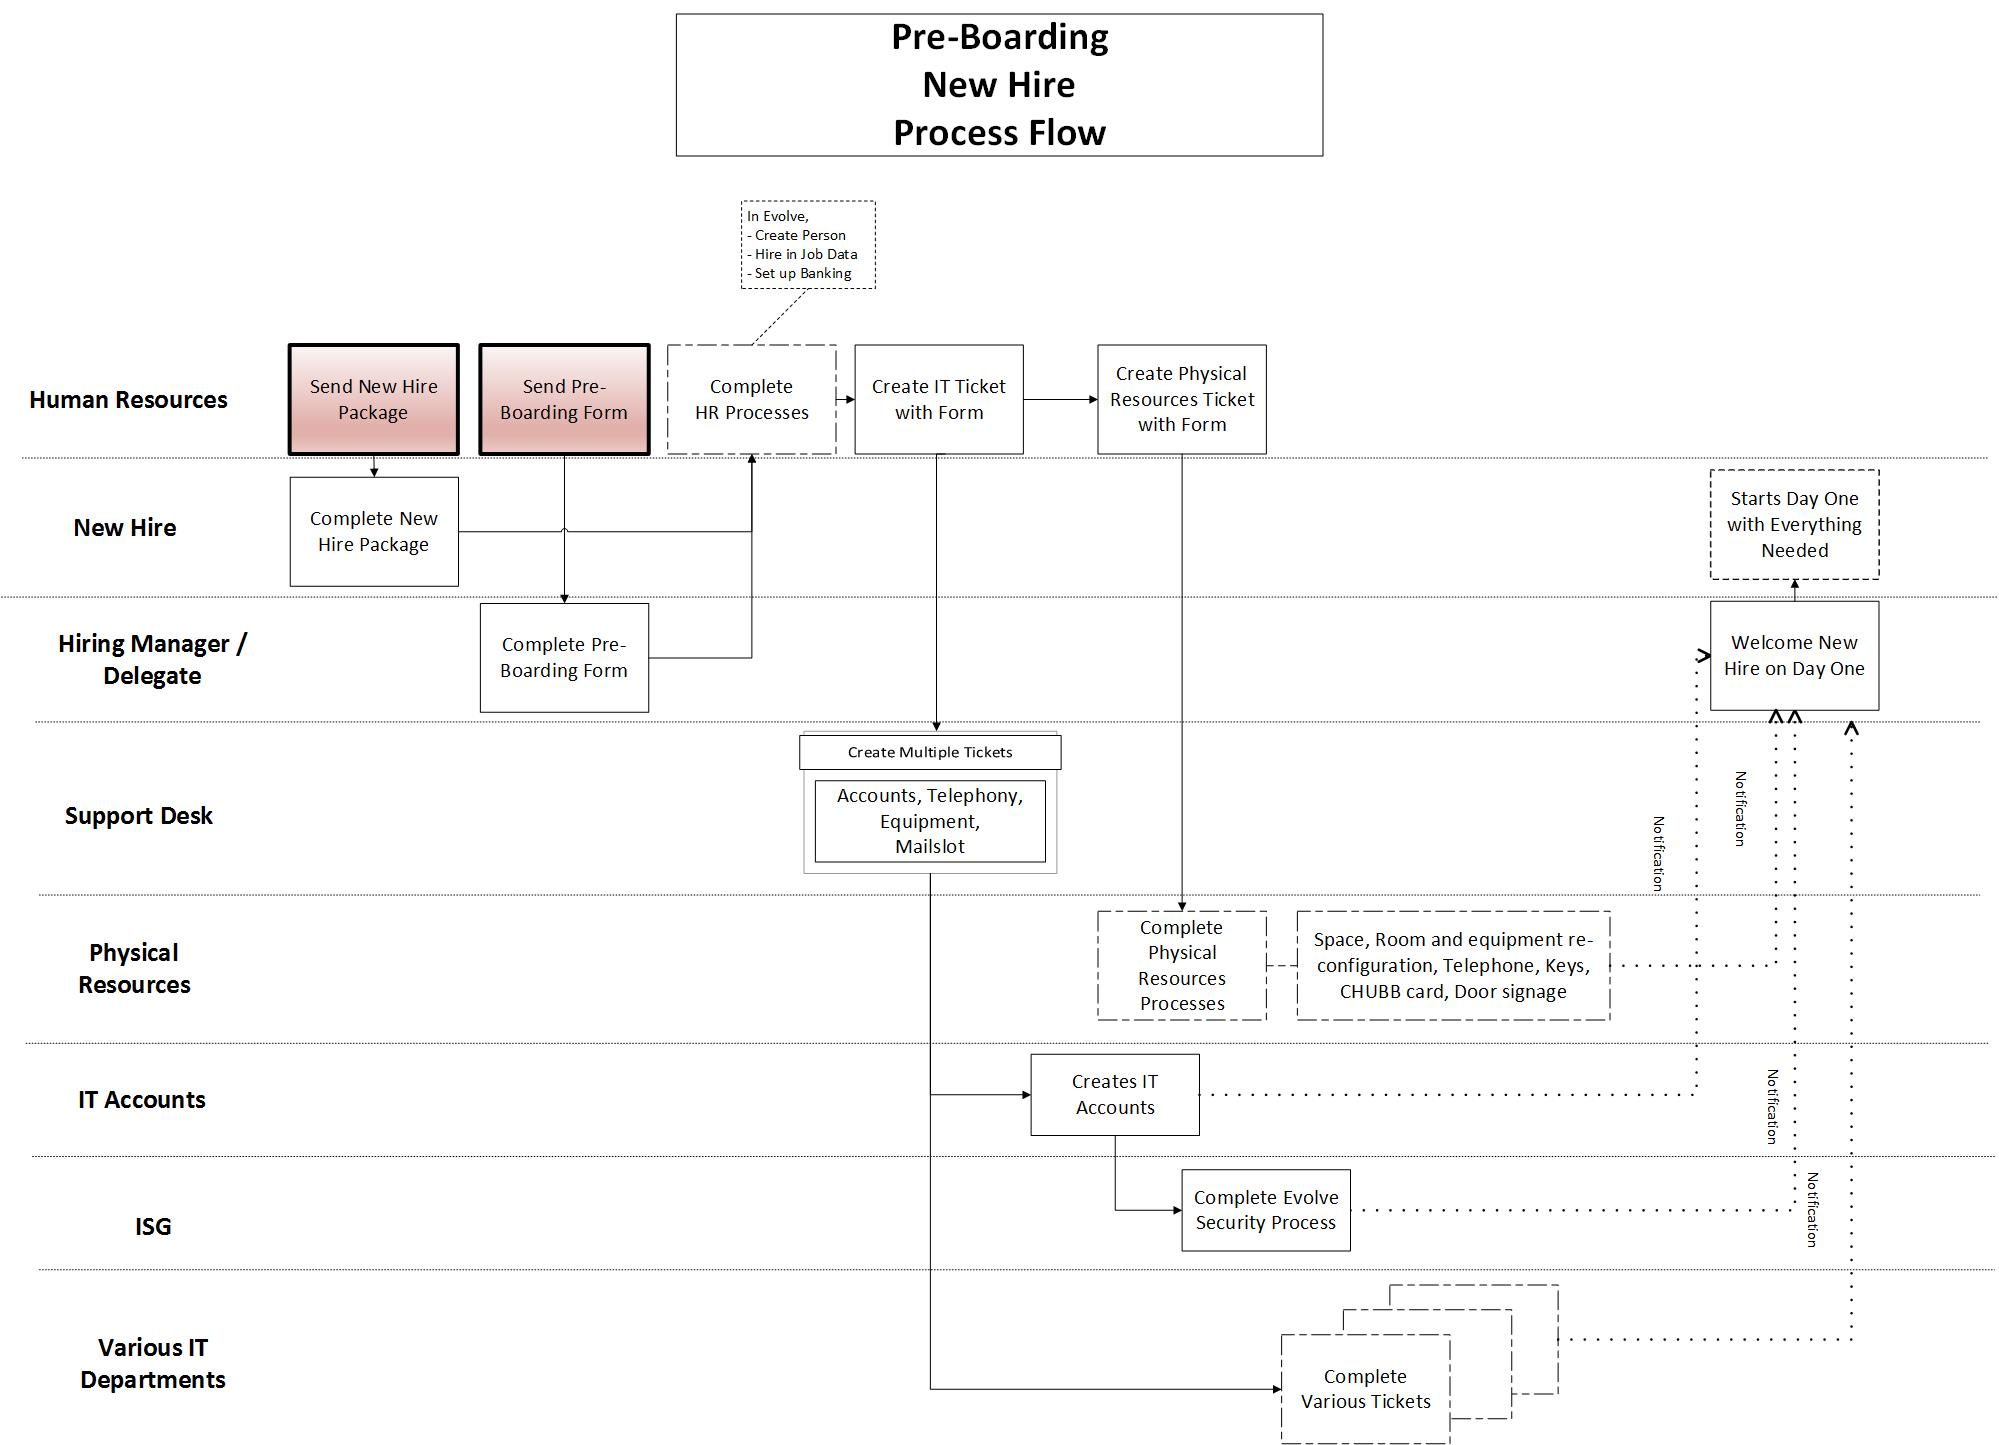 pre-boarding-new-hires-process-flow